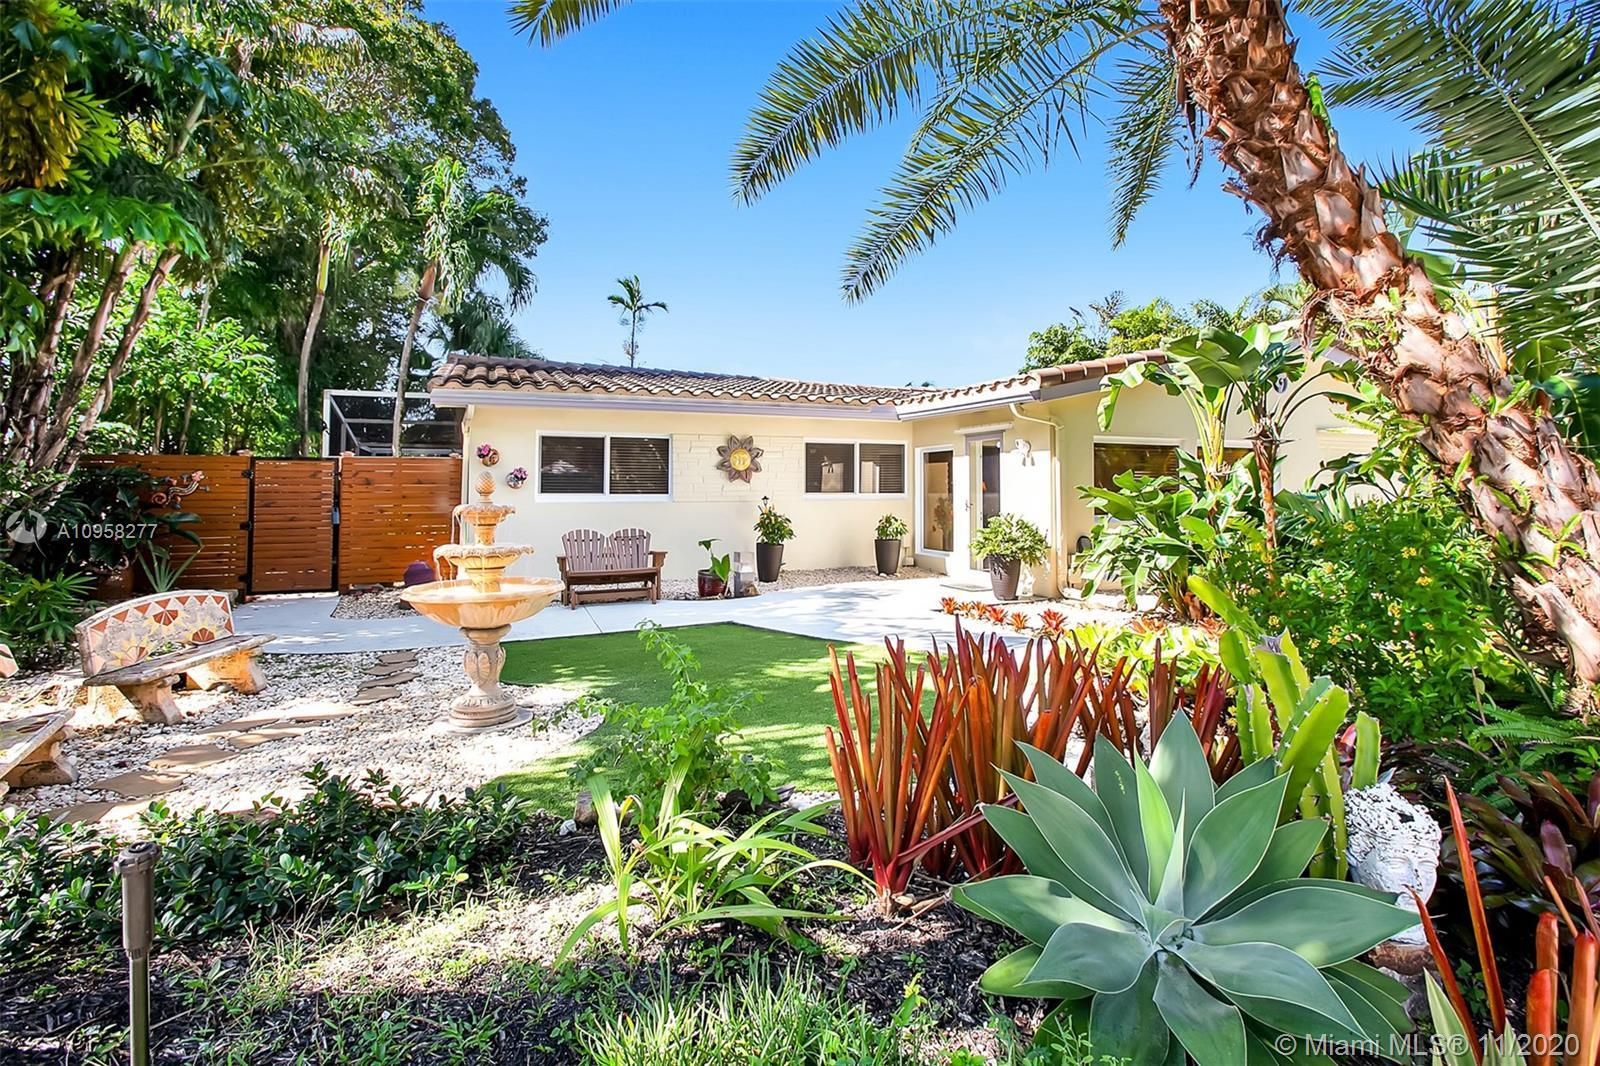 Magnificent Wilton Manors pool home with a beautifully landscaped courtyard that you might want to s